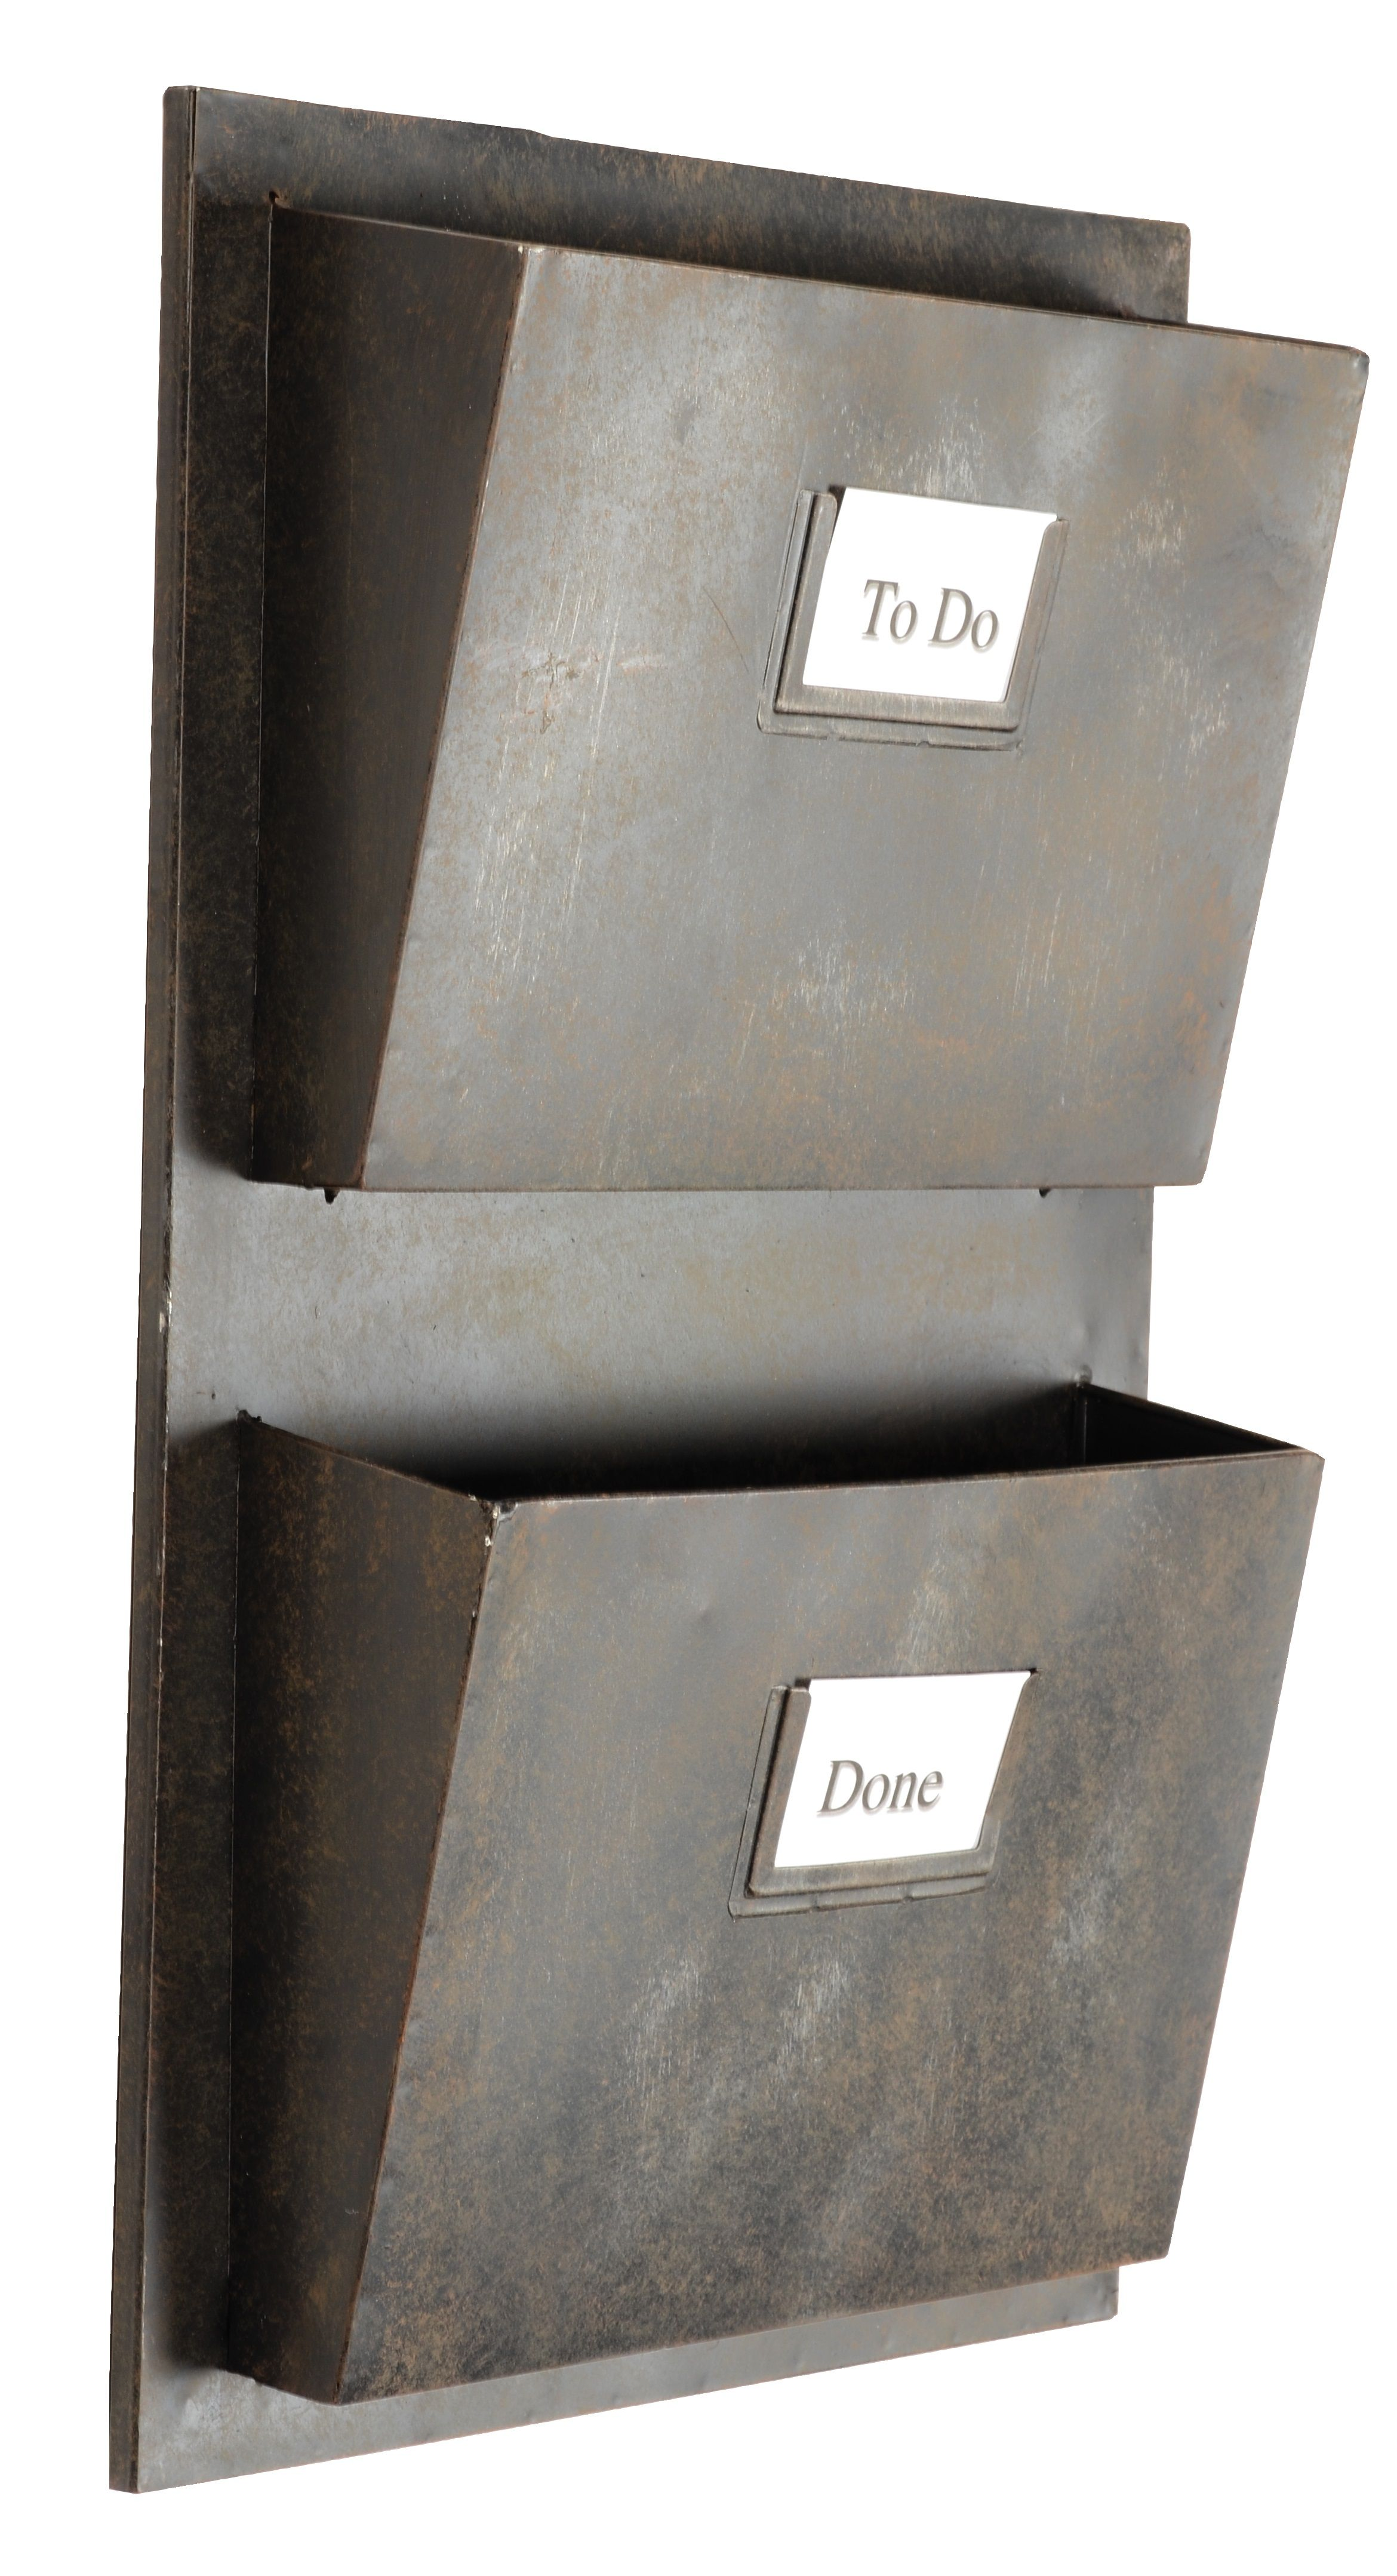 office mailbox organizer. Furnituremaxx com Rustic Grey Metal Industrial Wall Mounted Mail Organizers  Two Slots